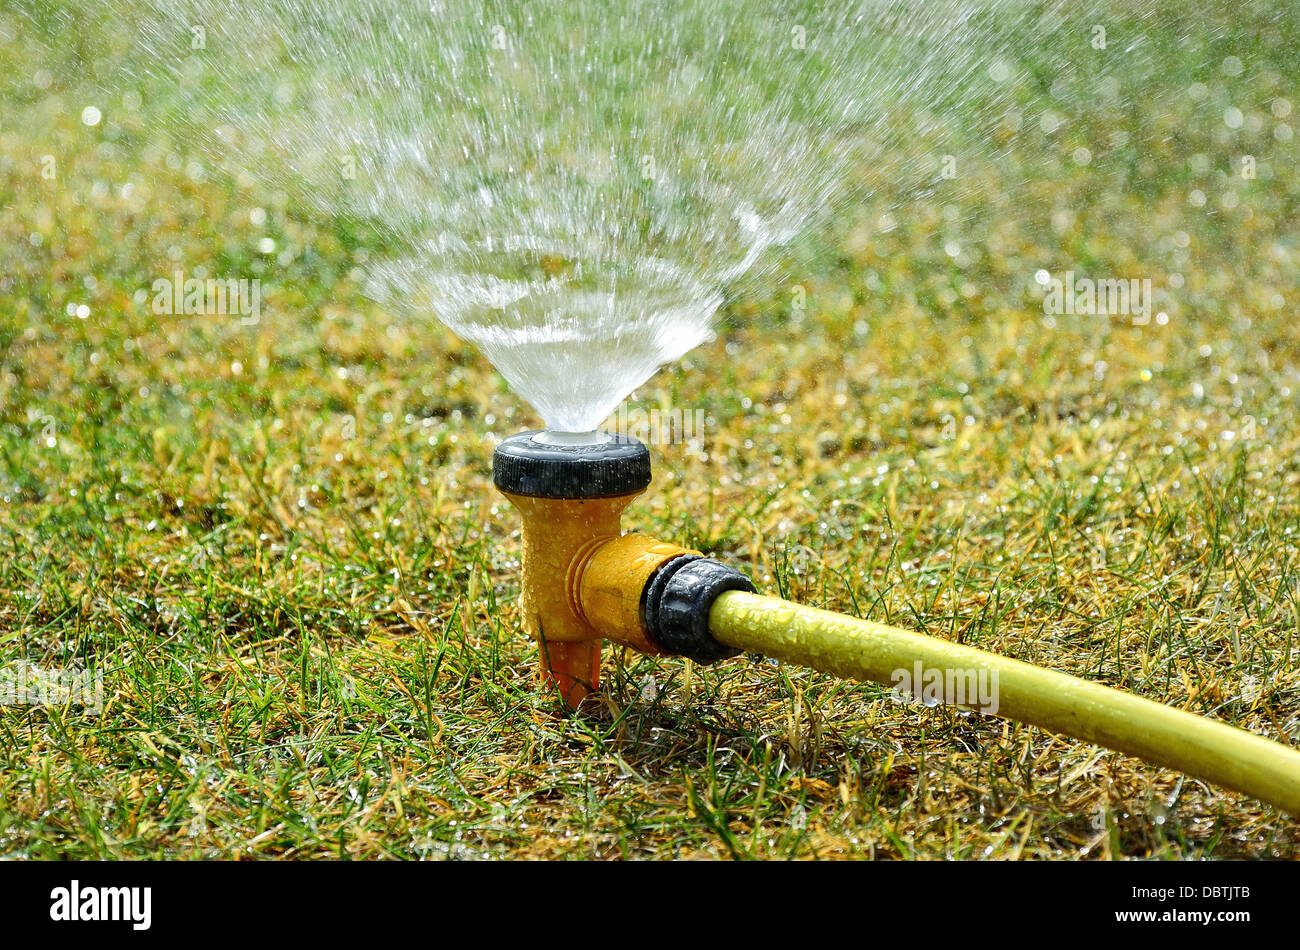 garden watering system stockfotos garden watering system bilder alamy. Black Bedroom Furniture Sets. Home Design Ideas